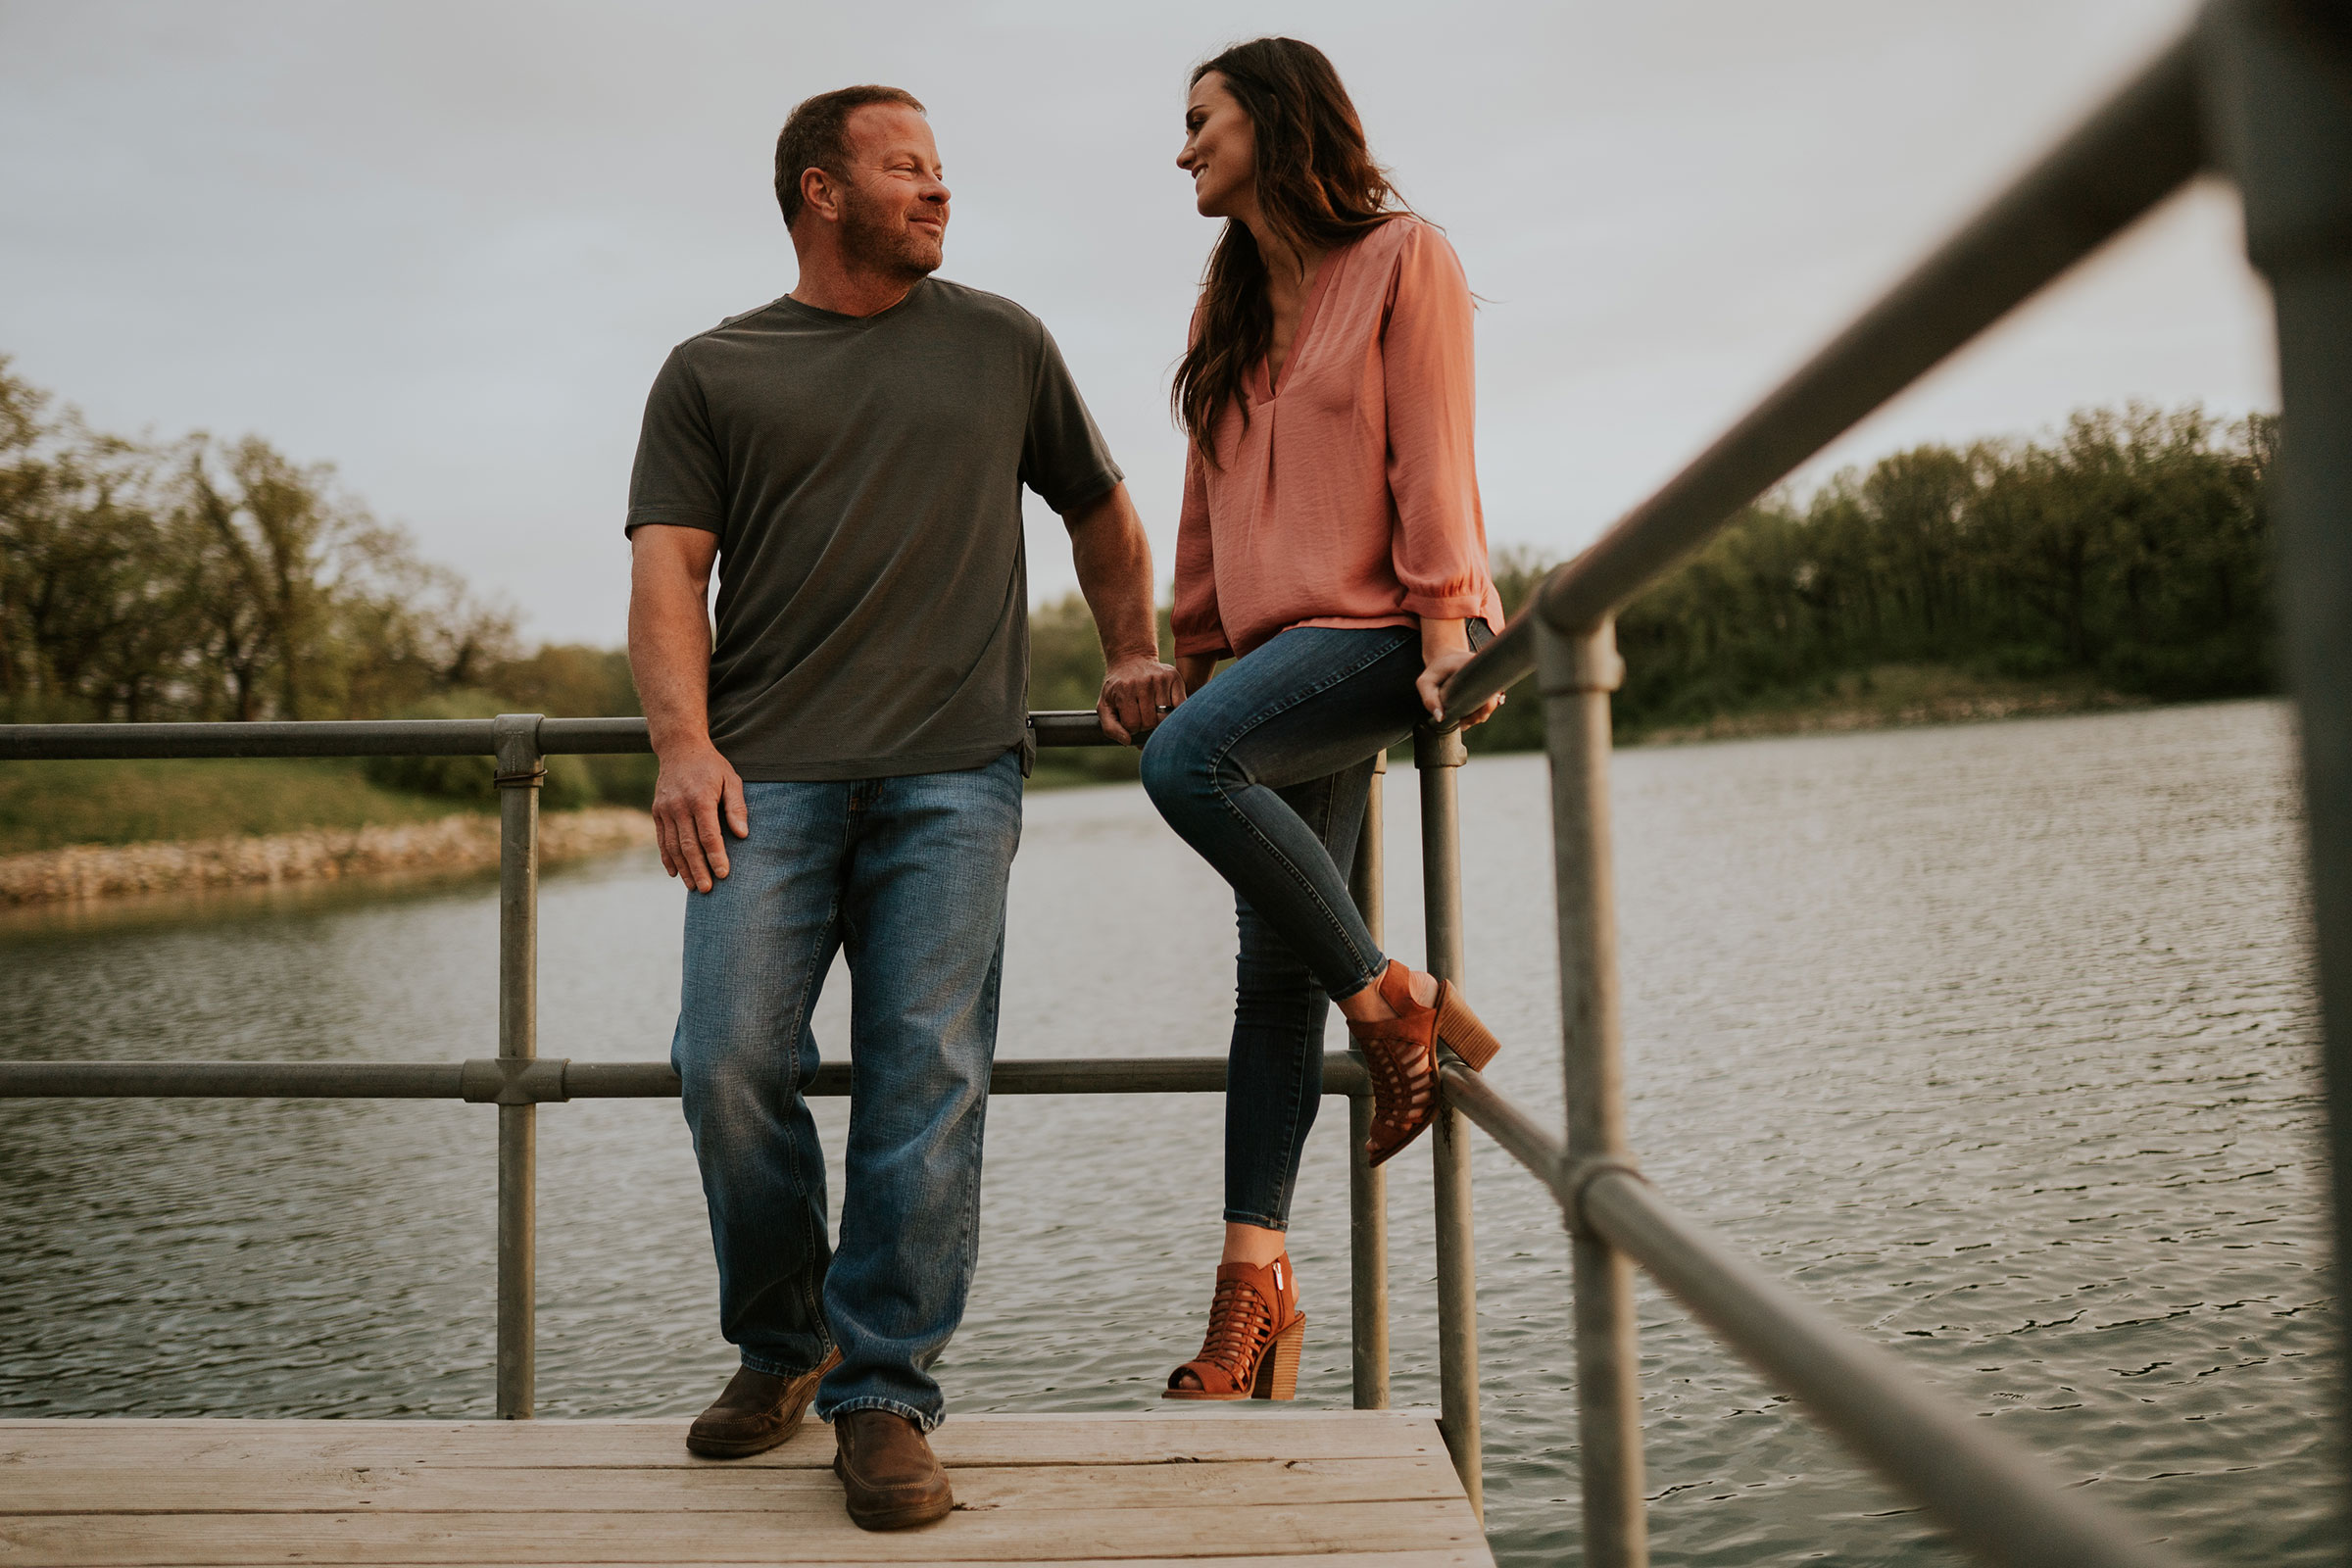 couple-leaning-on-dock-railing-looking-at-each-other-engagement-desmoines-iowa-raelyn-ramey-photography.jpg